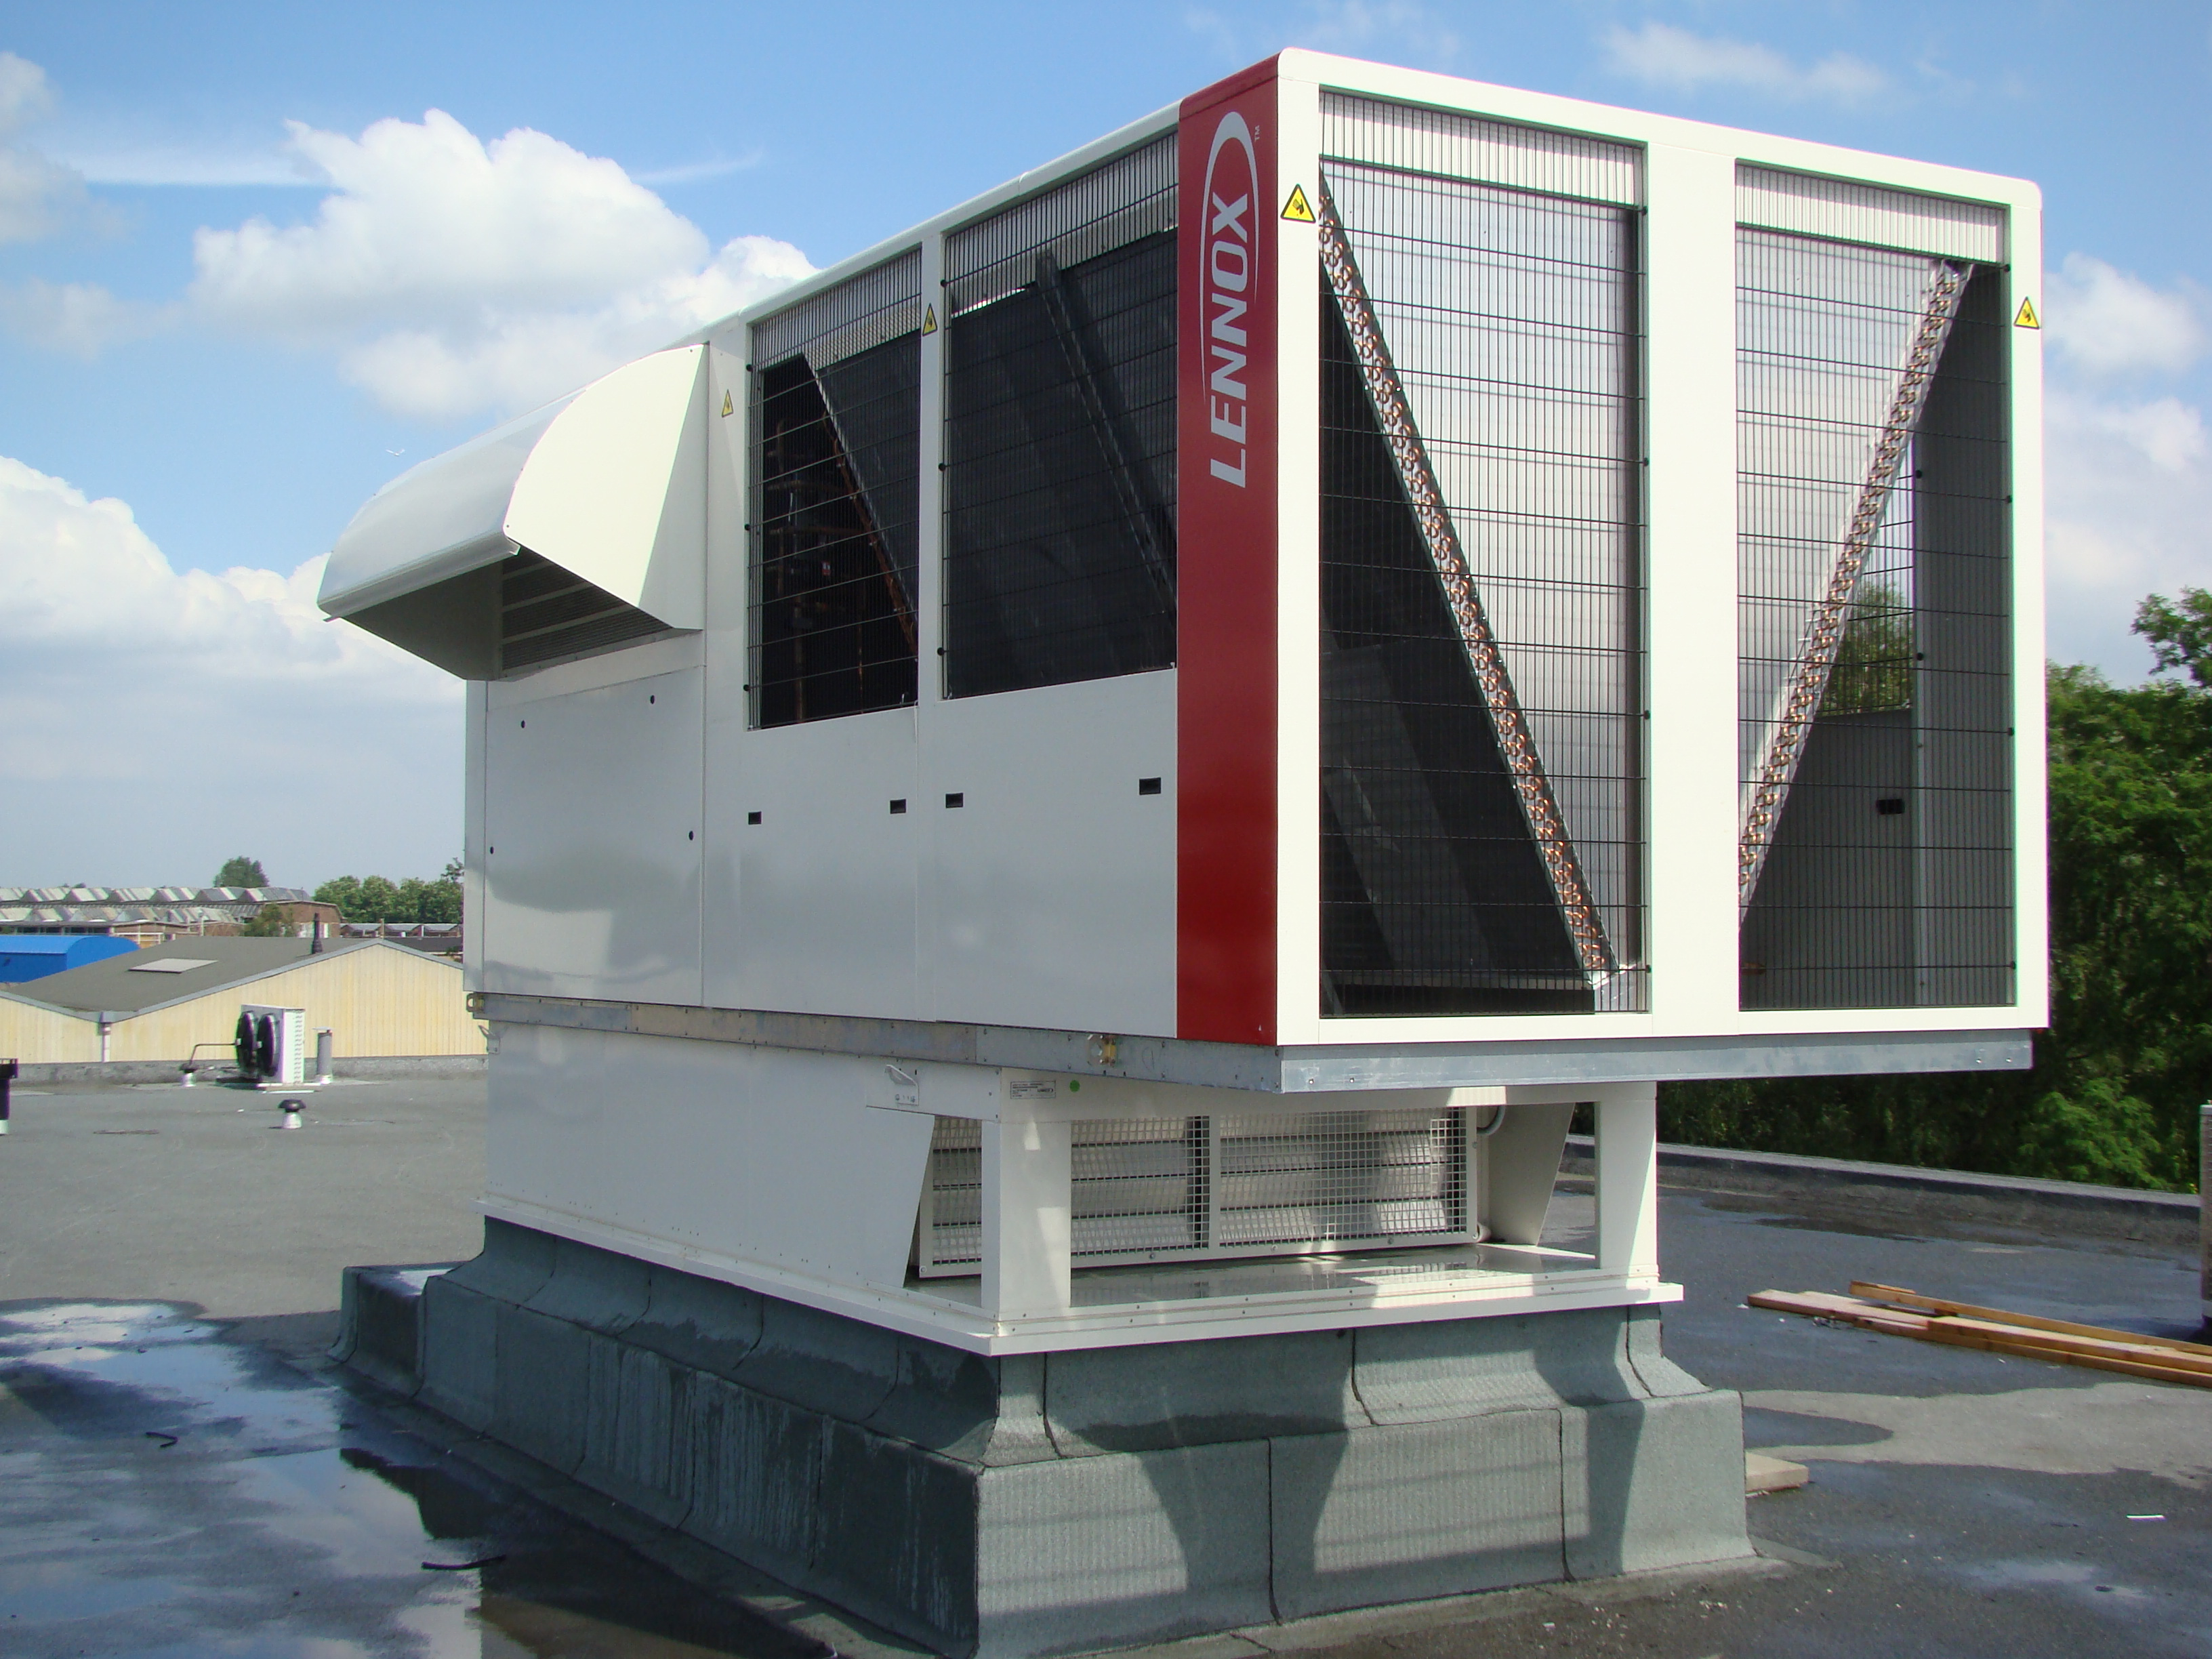 Image of a Lennox roof top commercial hvac unit